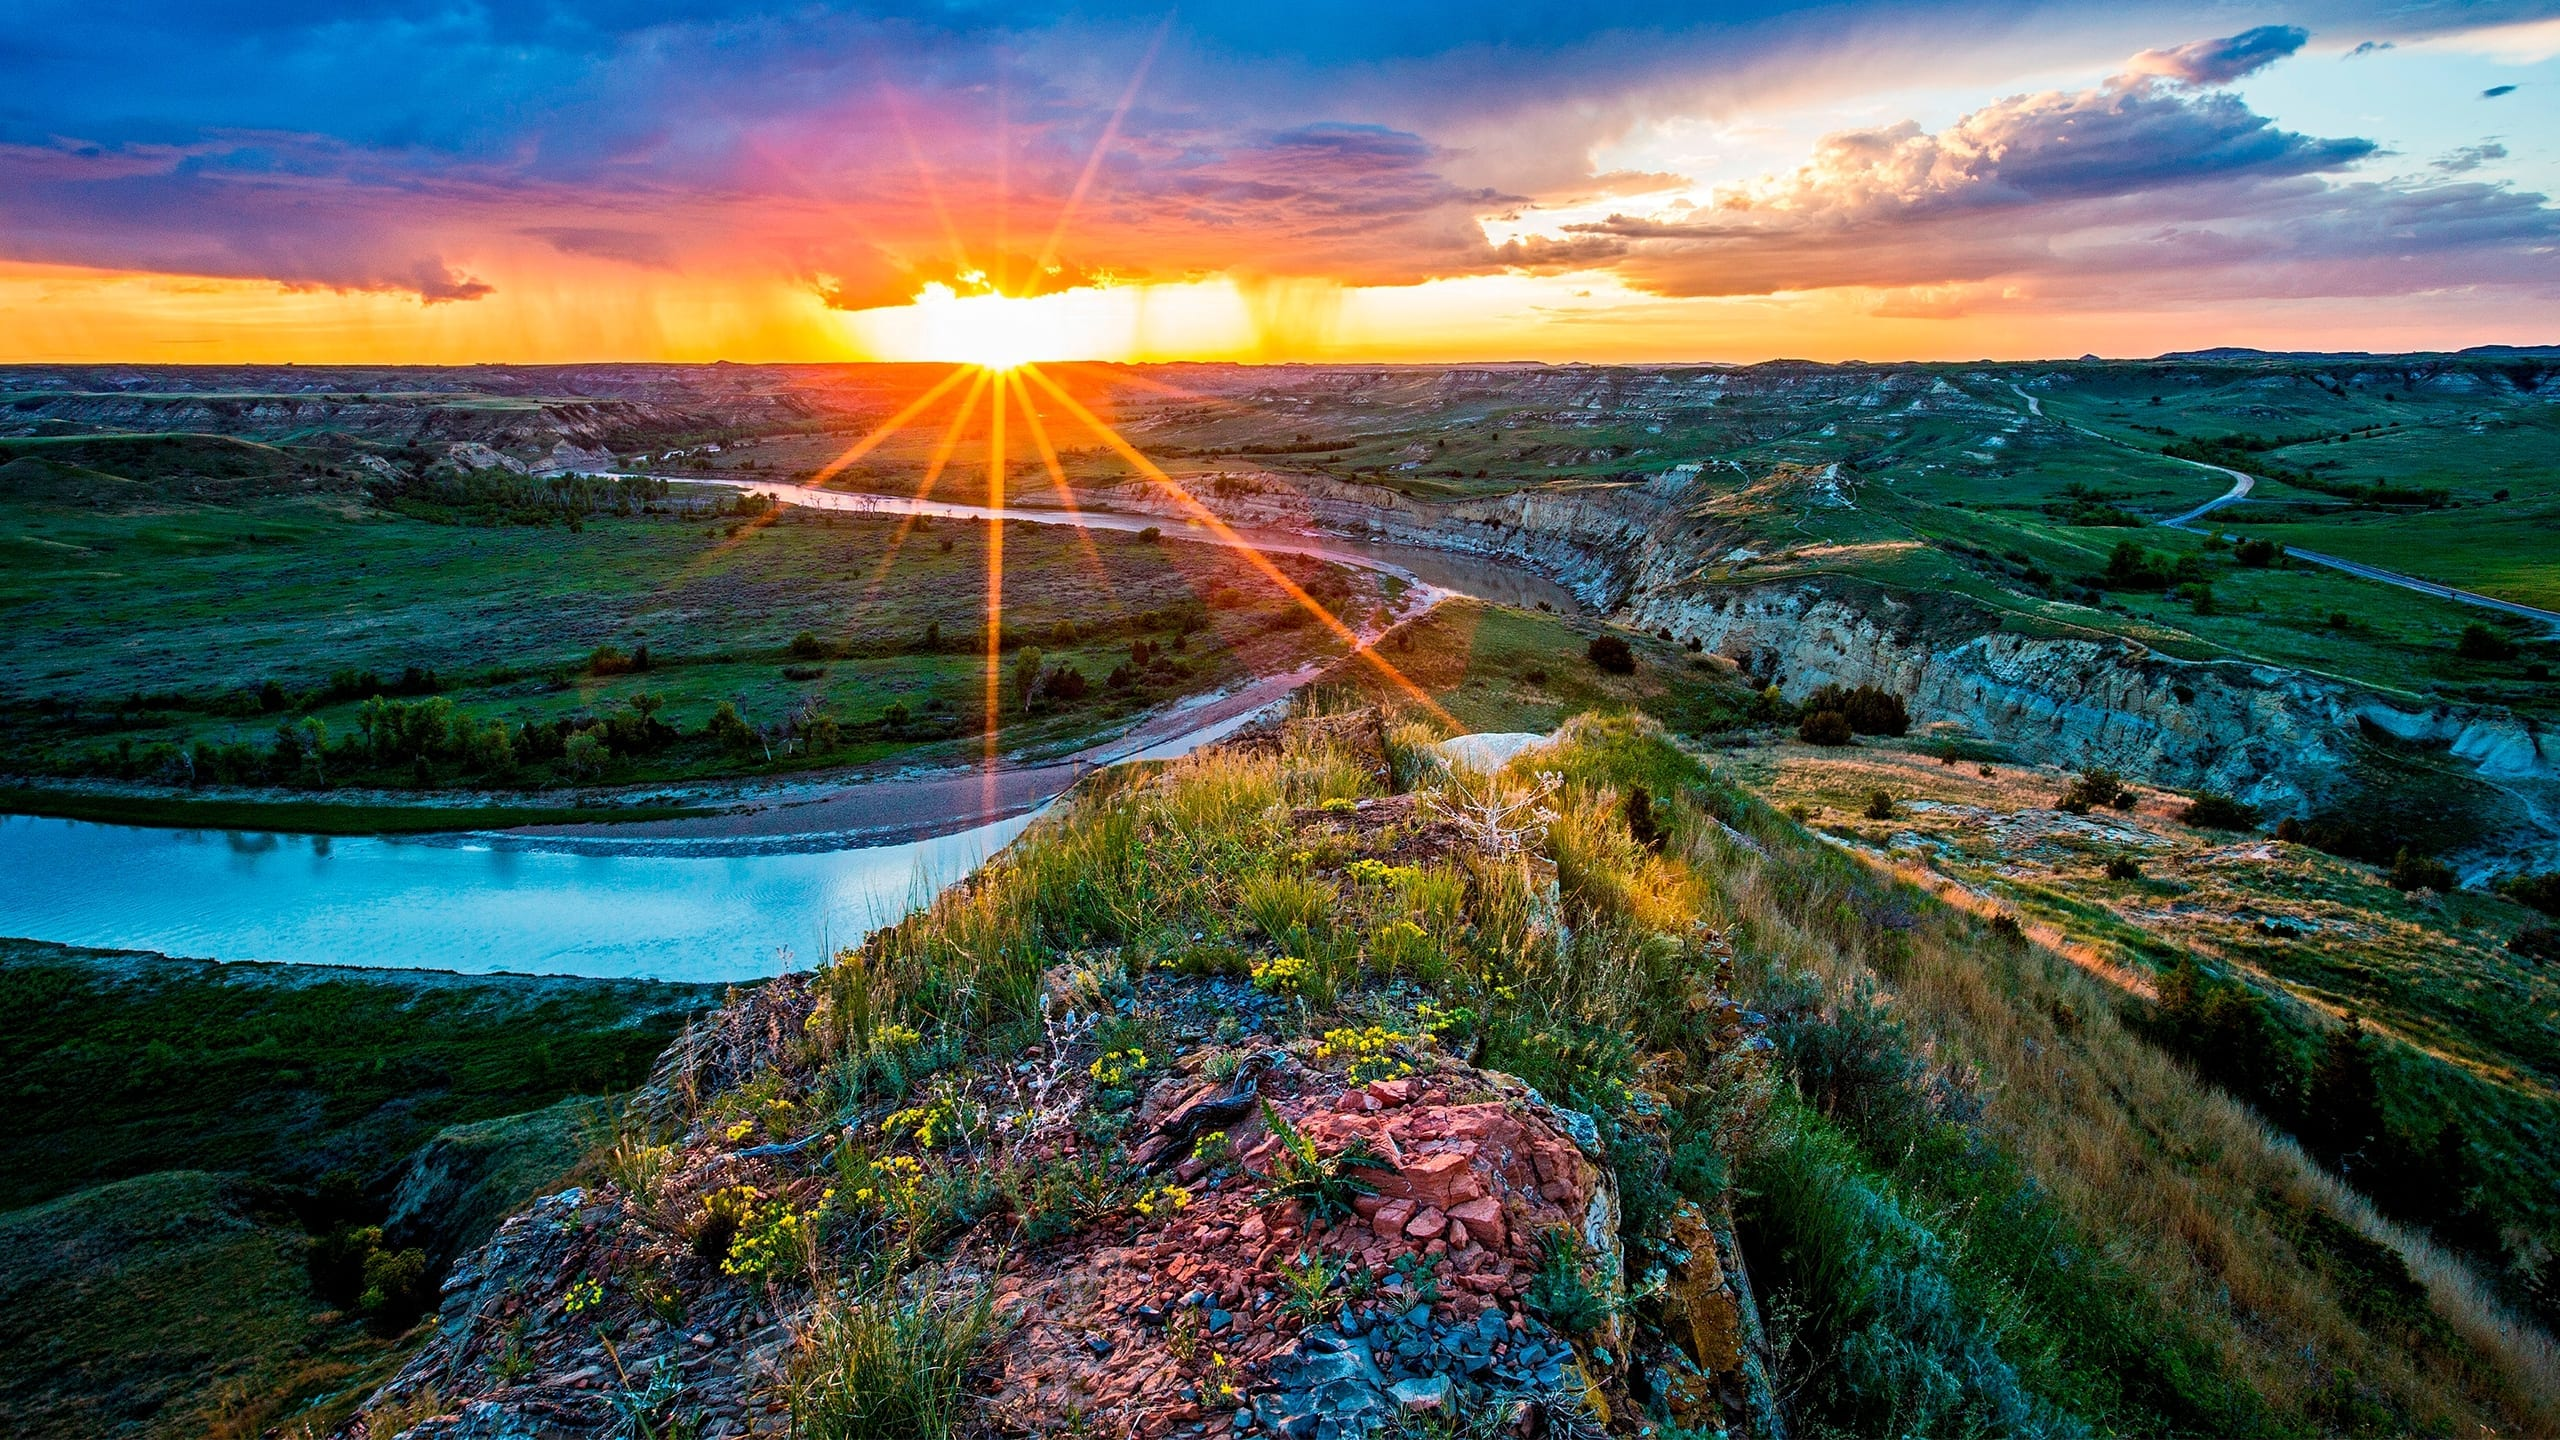 Rays from a setting sun burst through cloud to shine on a rocky butte and river down below.